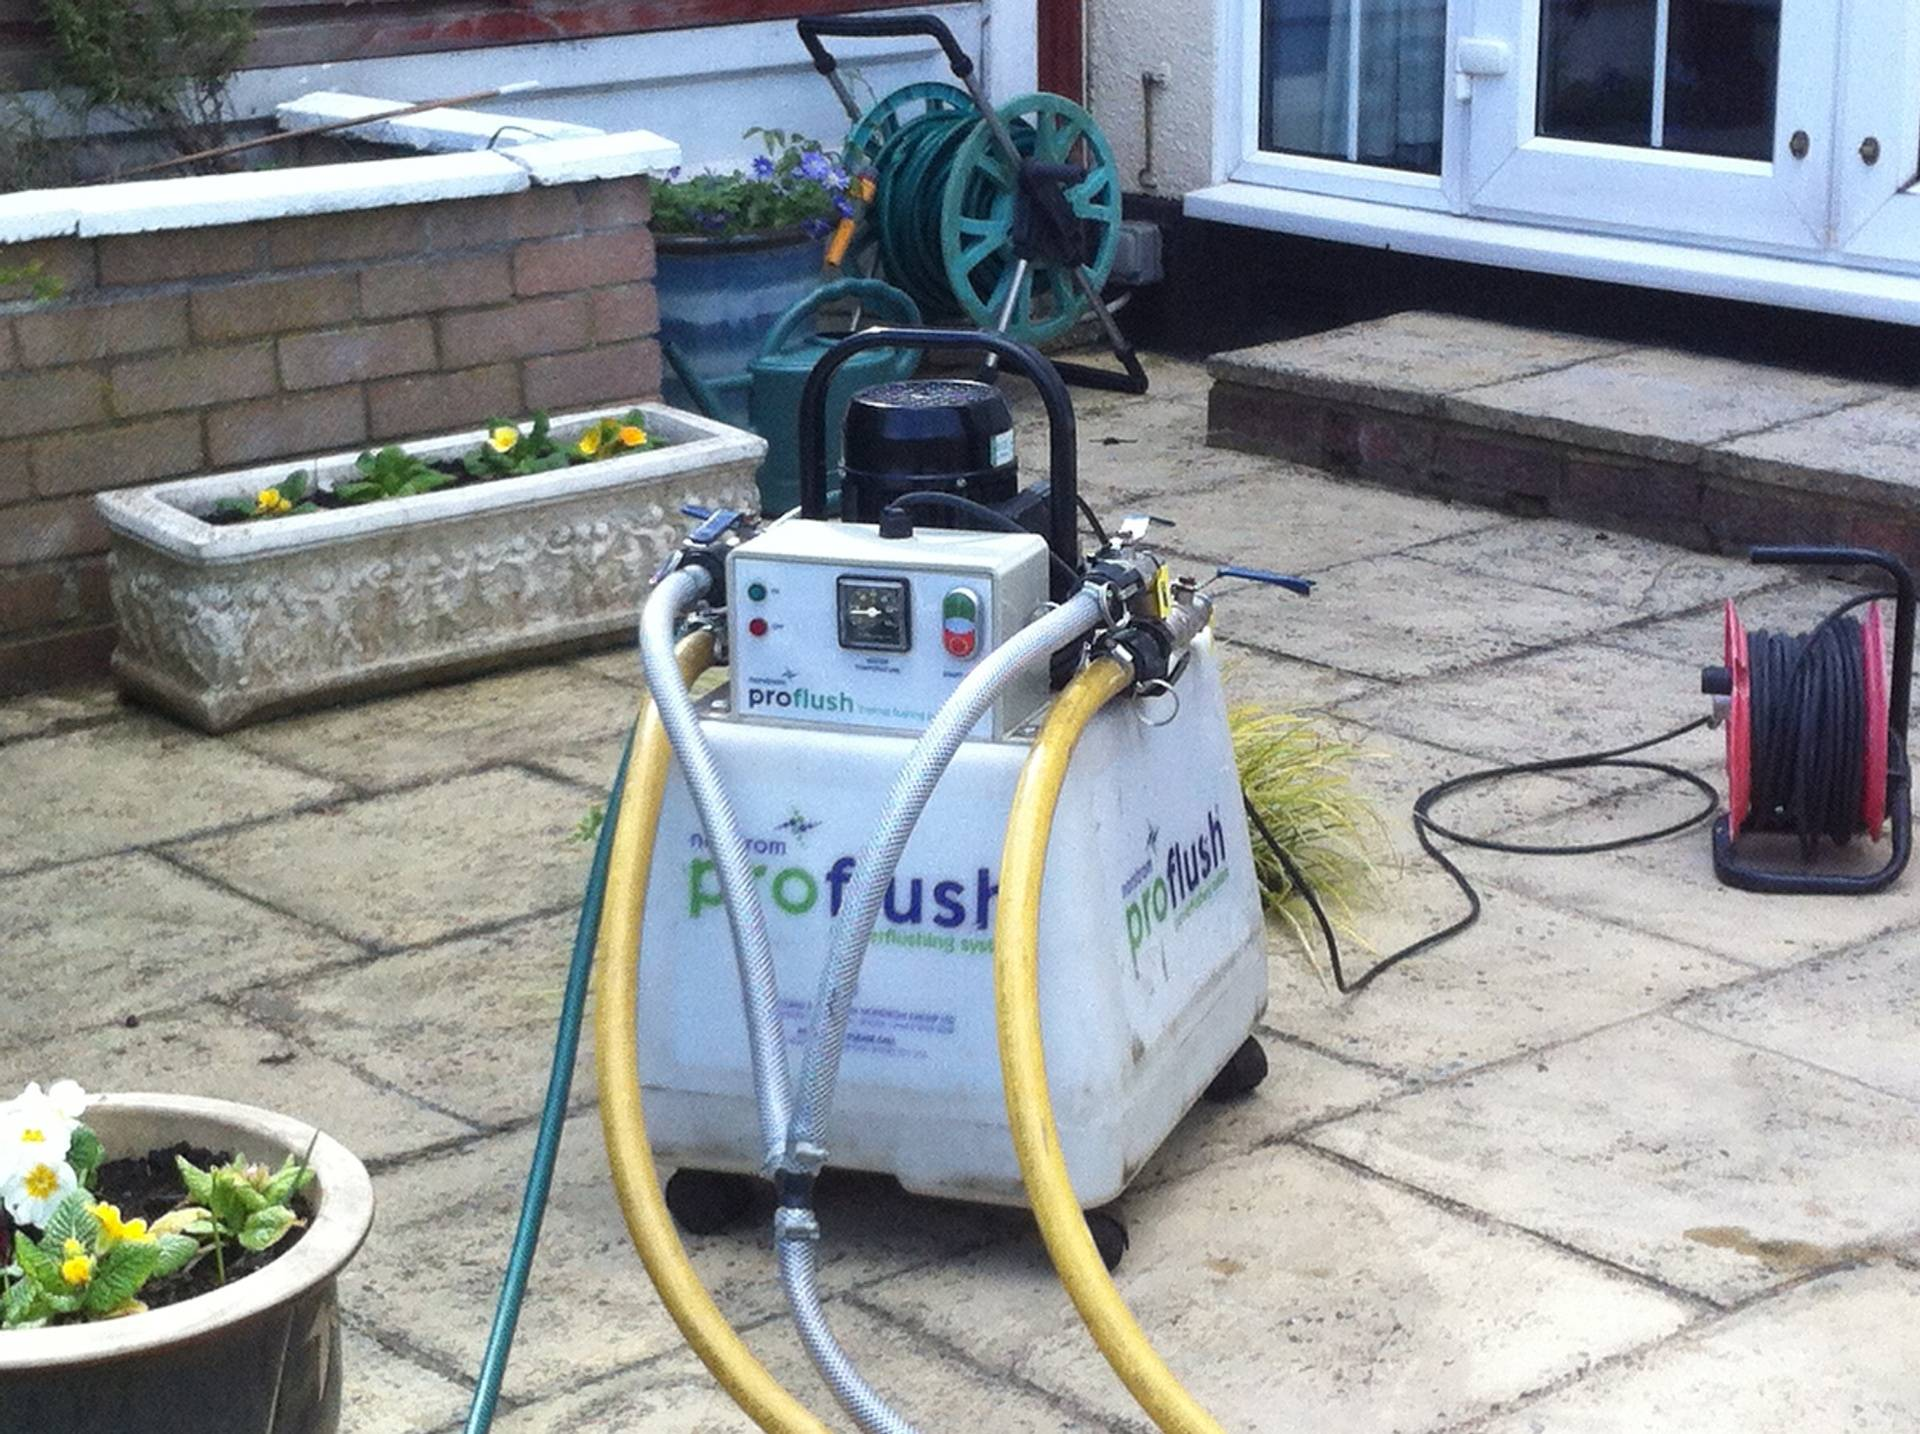 Our 'Norstrom Proflush Thermal Unit' being prepared.